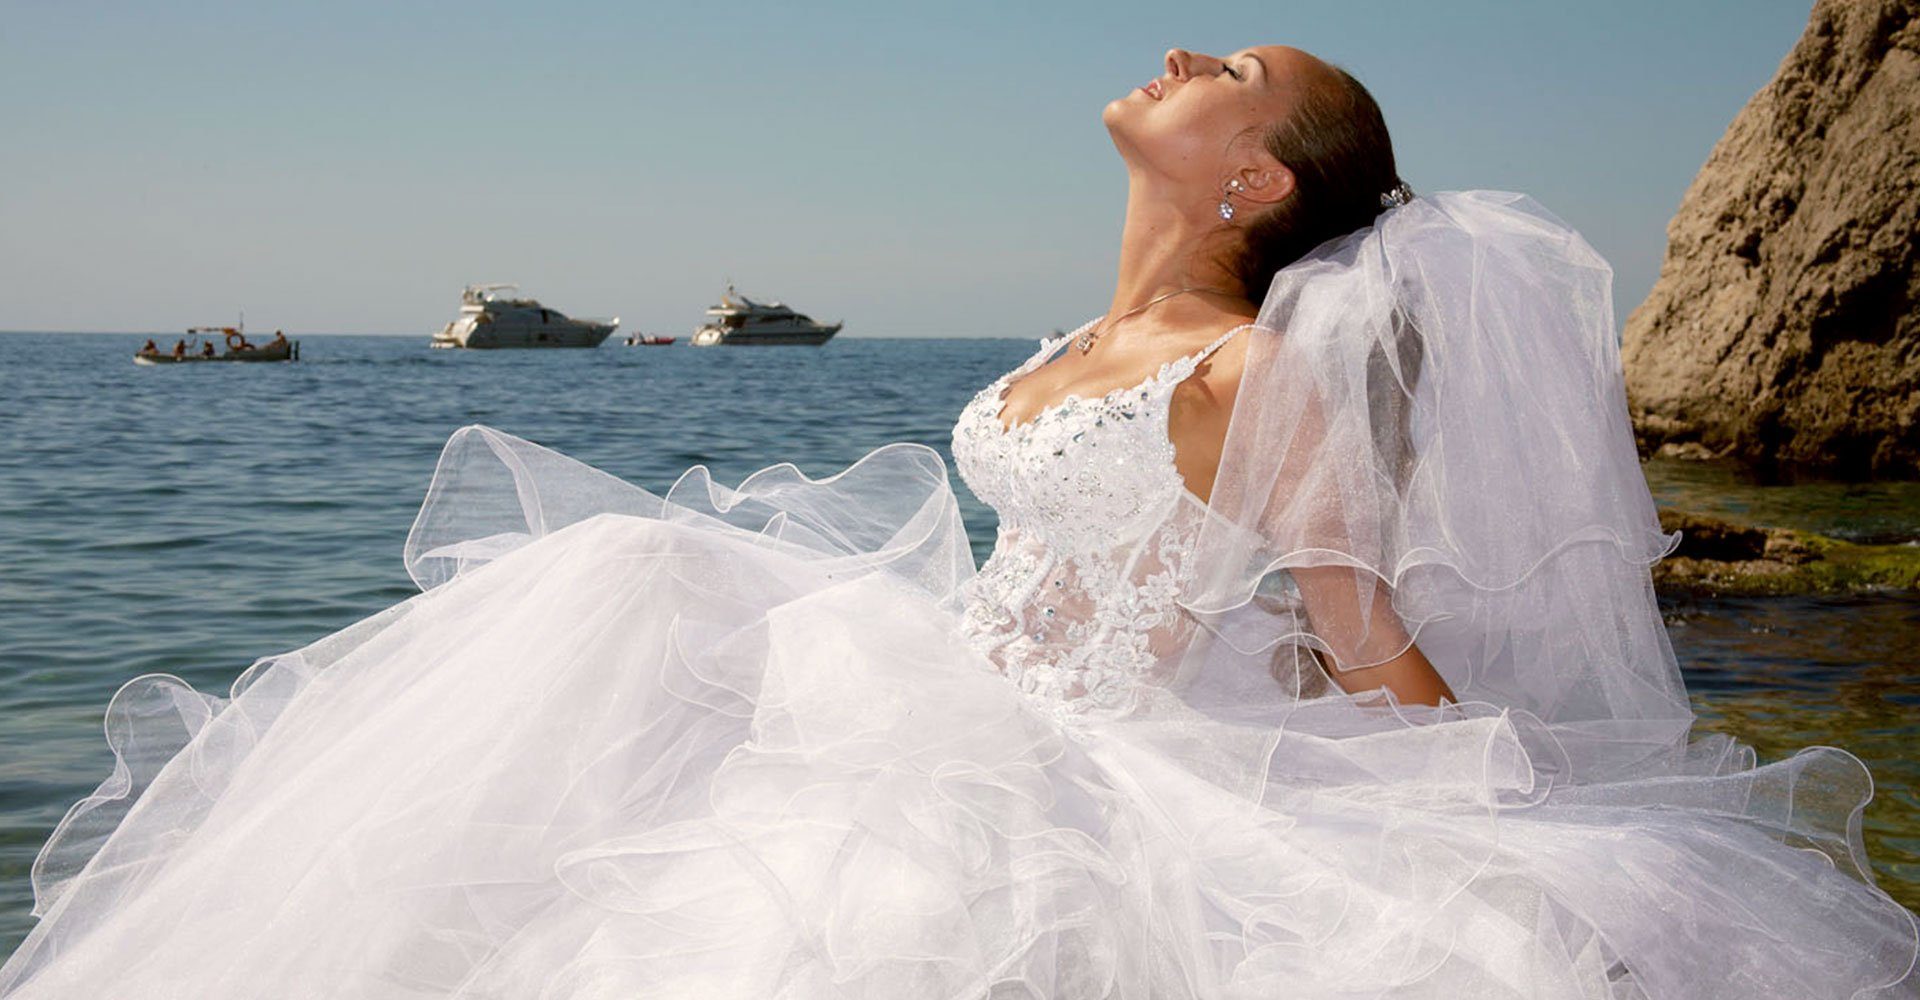 Bride on a boat